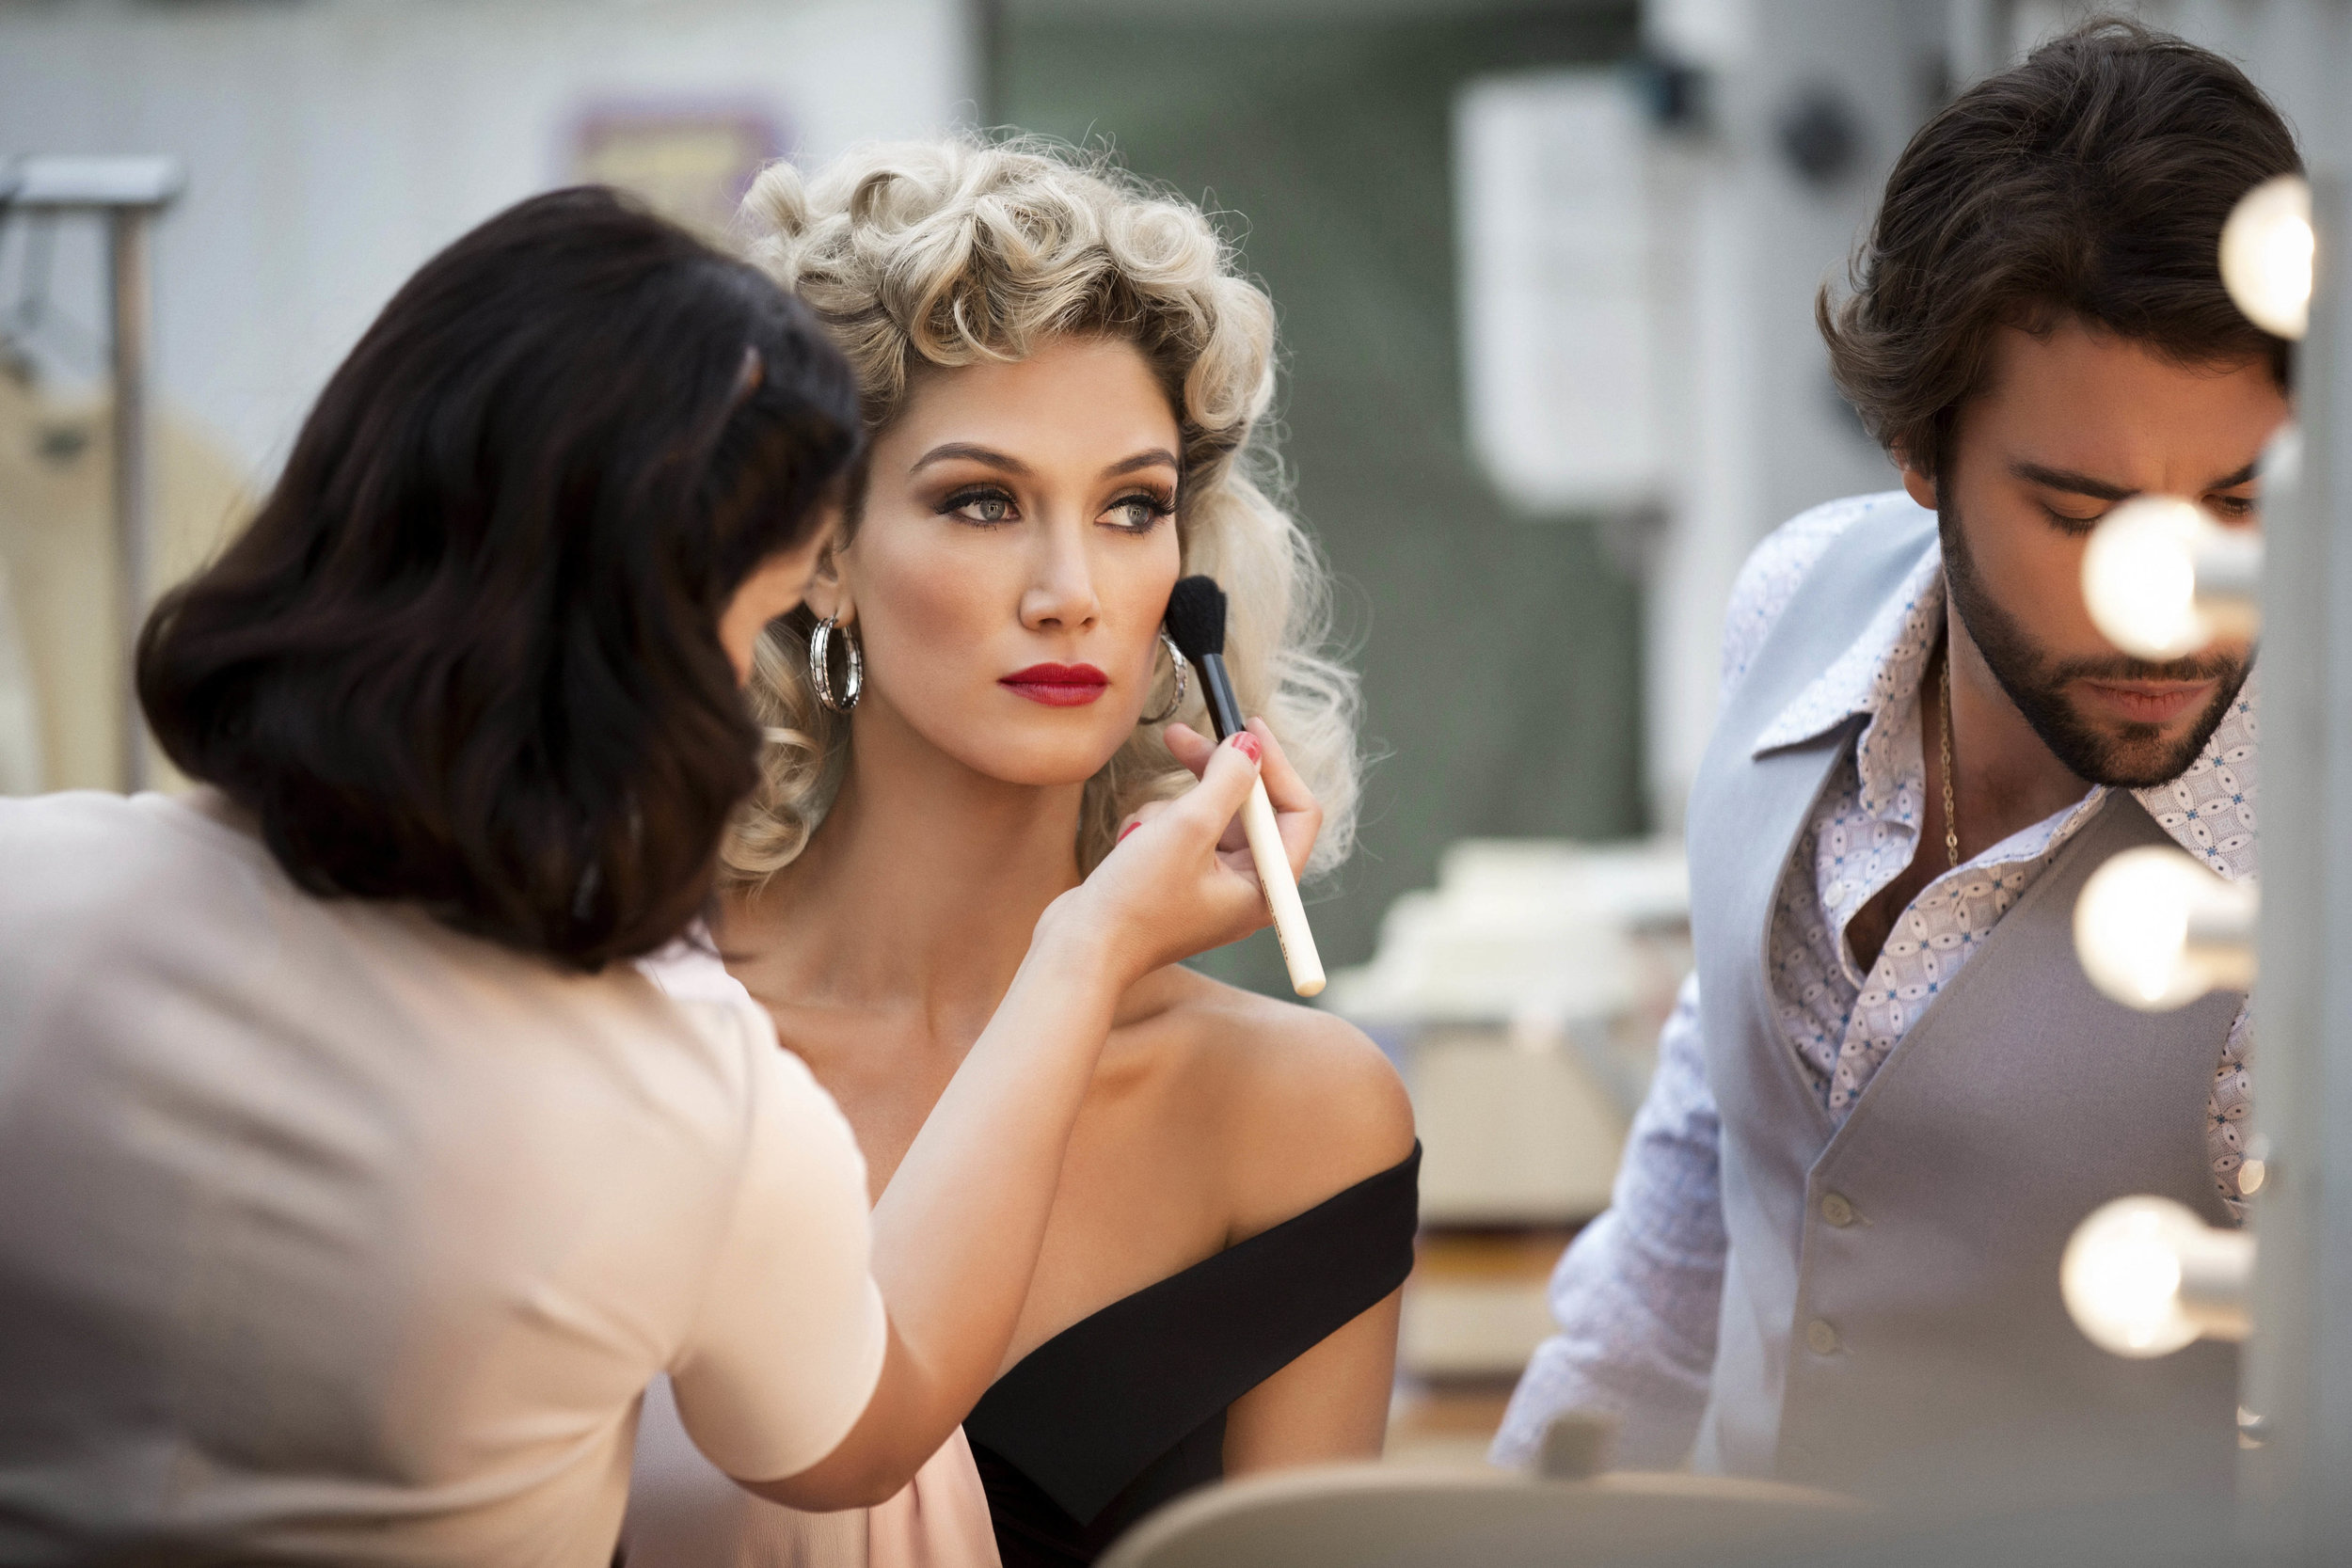 Part 1 - ONJ - Olivia (Delta Goodrem) on the set of Grease (Photo-FMAtaken by Kelly Gardner) 8.jpg